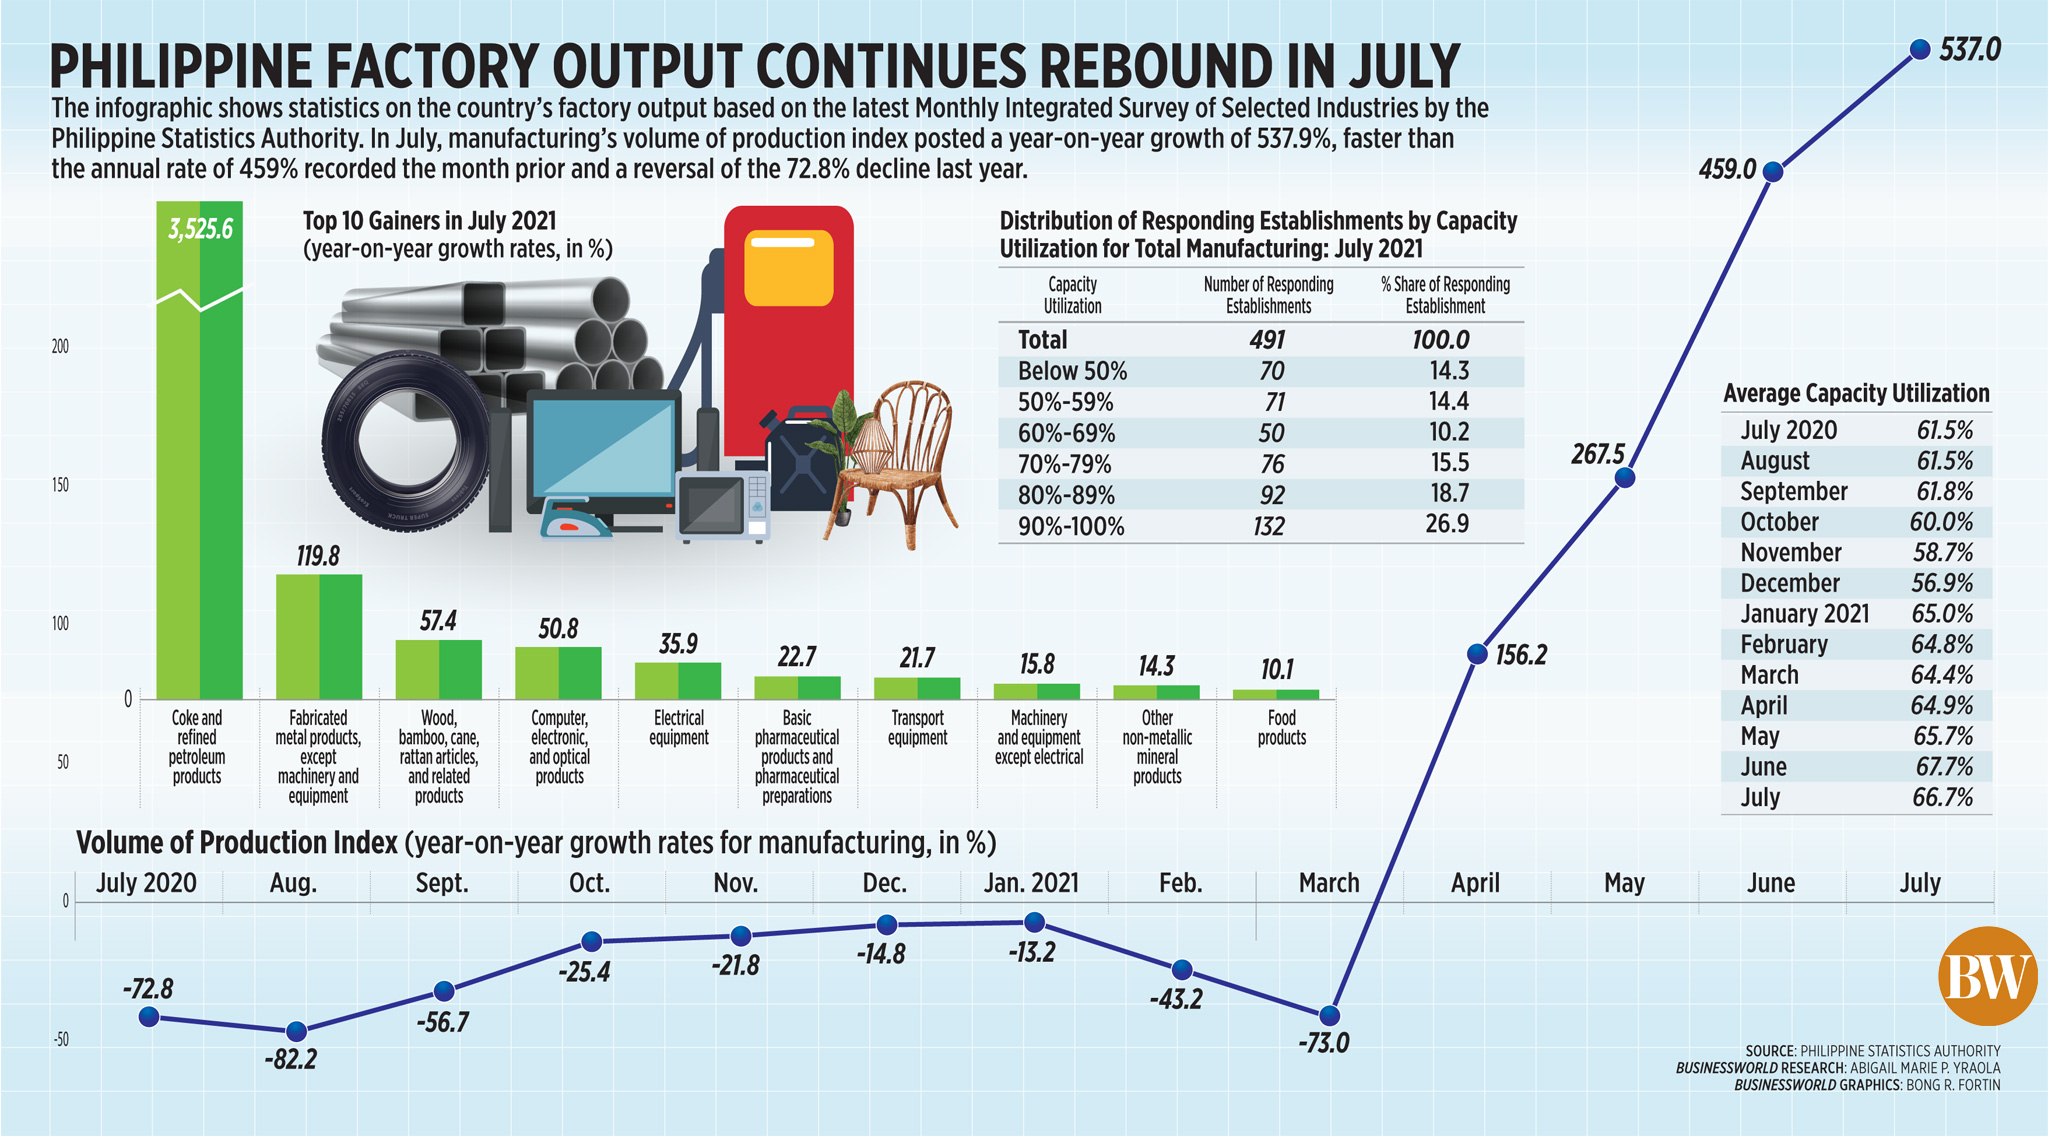 Philippine factory output continues rebound in July (2021)